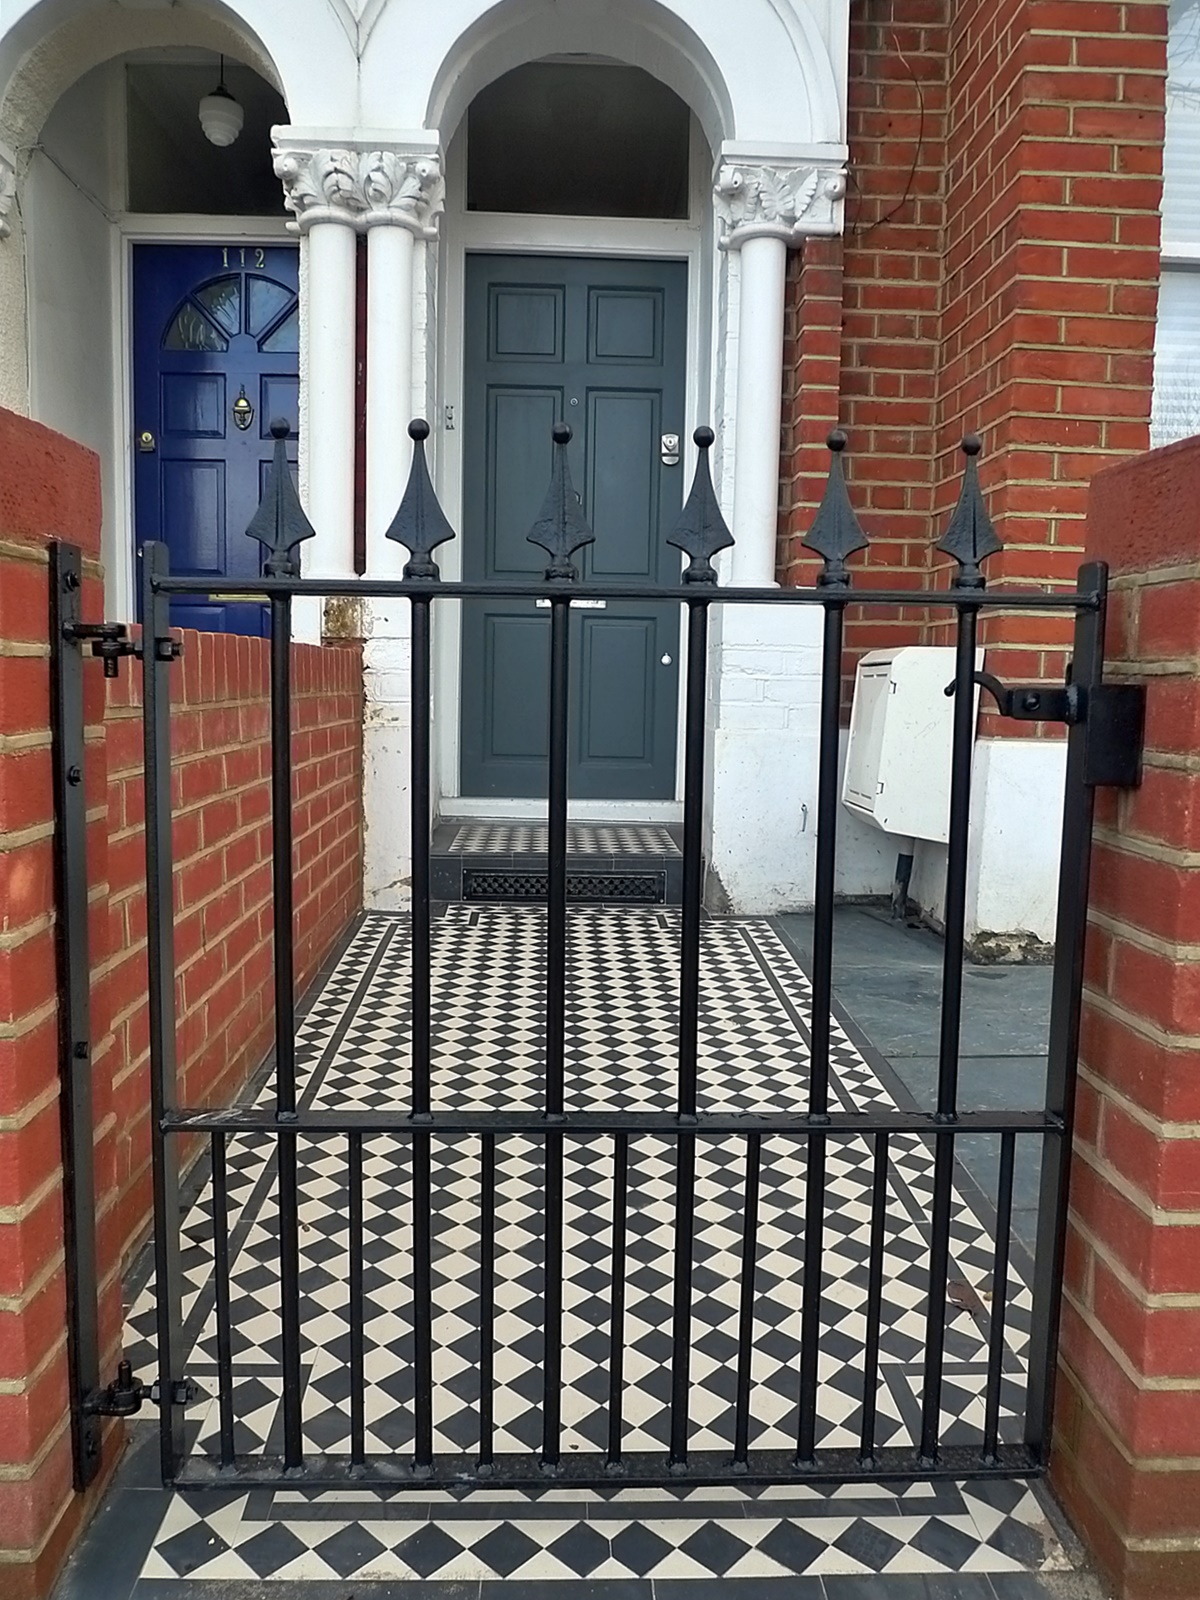 Victorian Front Company London Walls Red Brick Formal